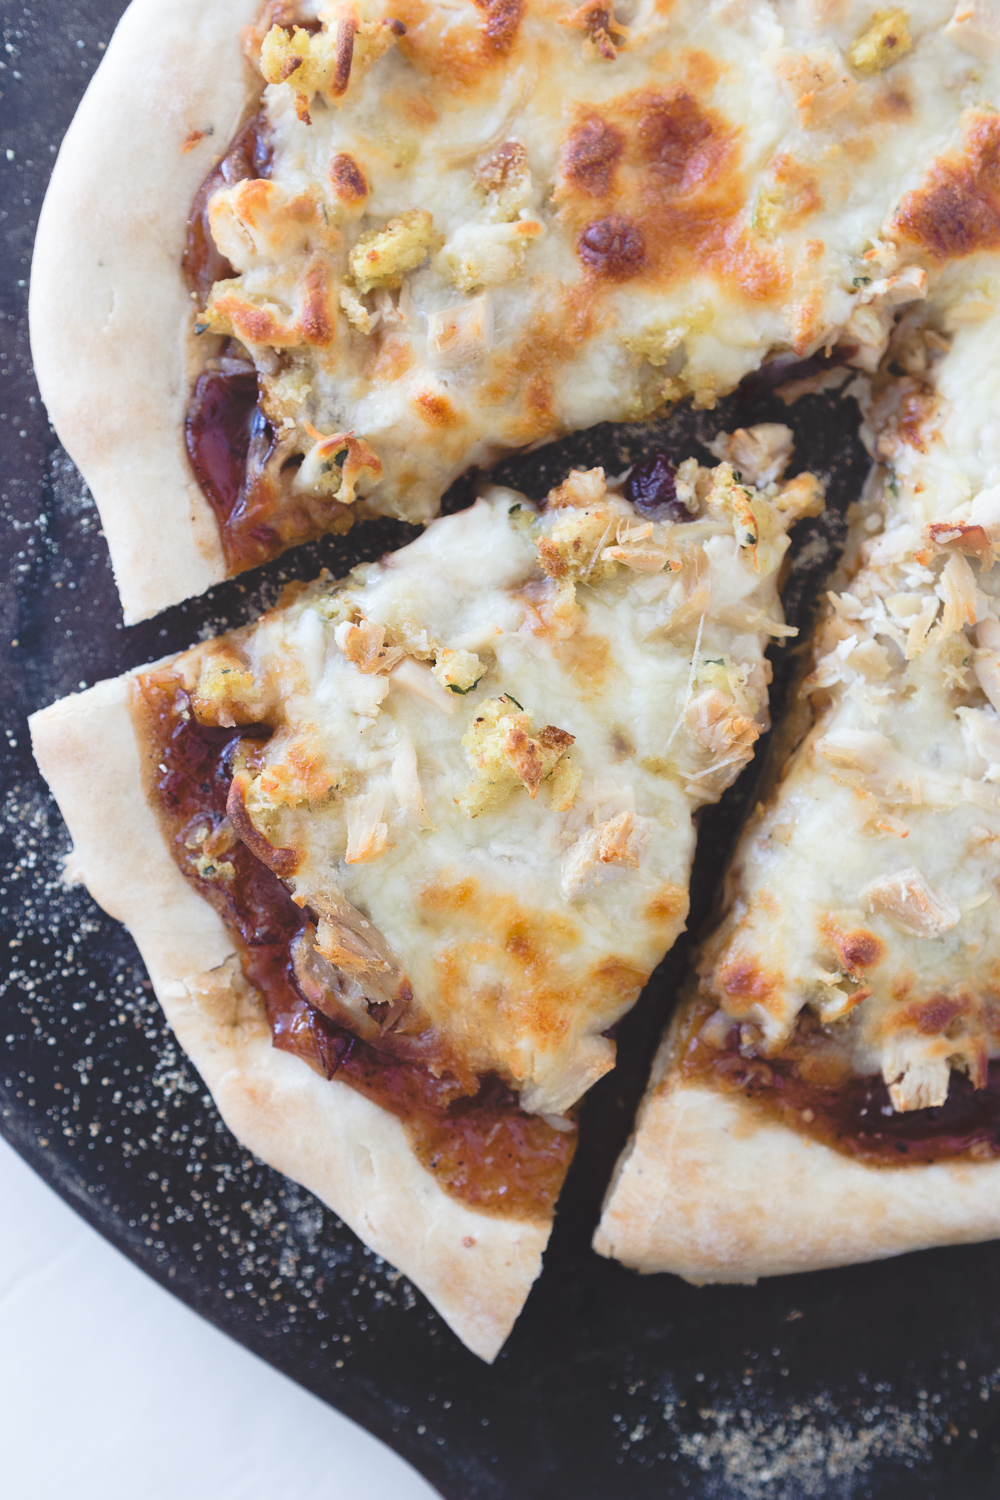 Thanksgiving Leftovers Pizza: Thanksgiving left overs turkey, stuffing and cranberry sauce come together in a fun new pizza recipe!